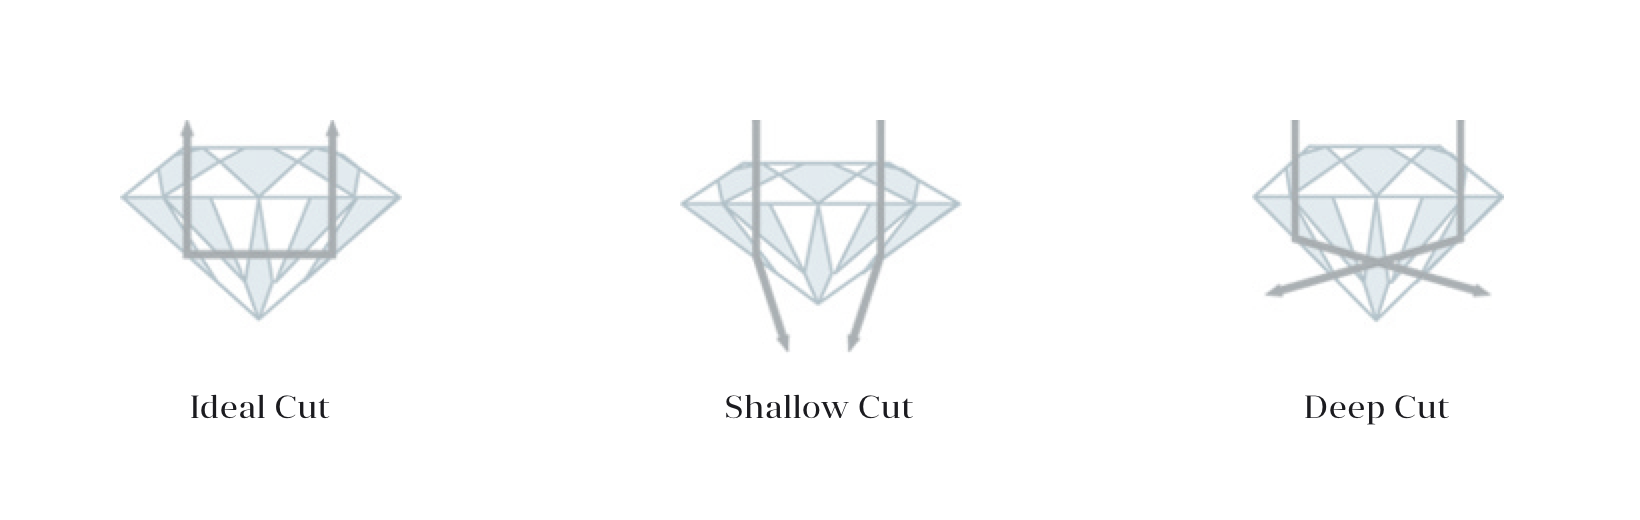 The Cut Scale of Diamonds